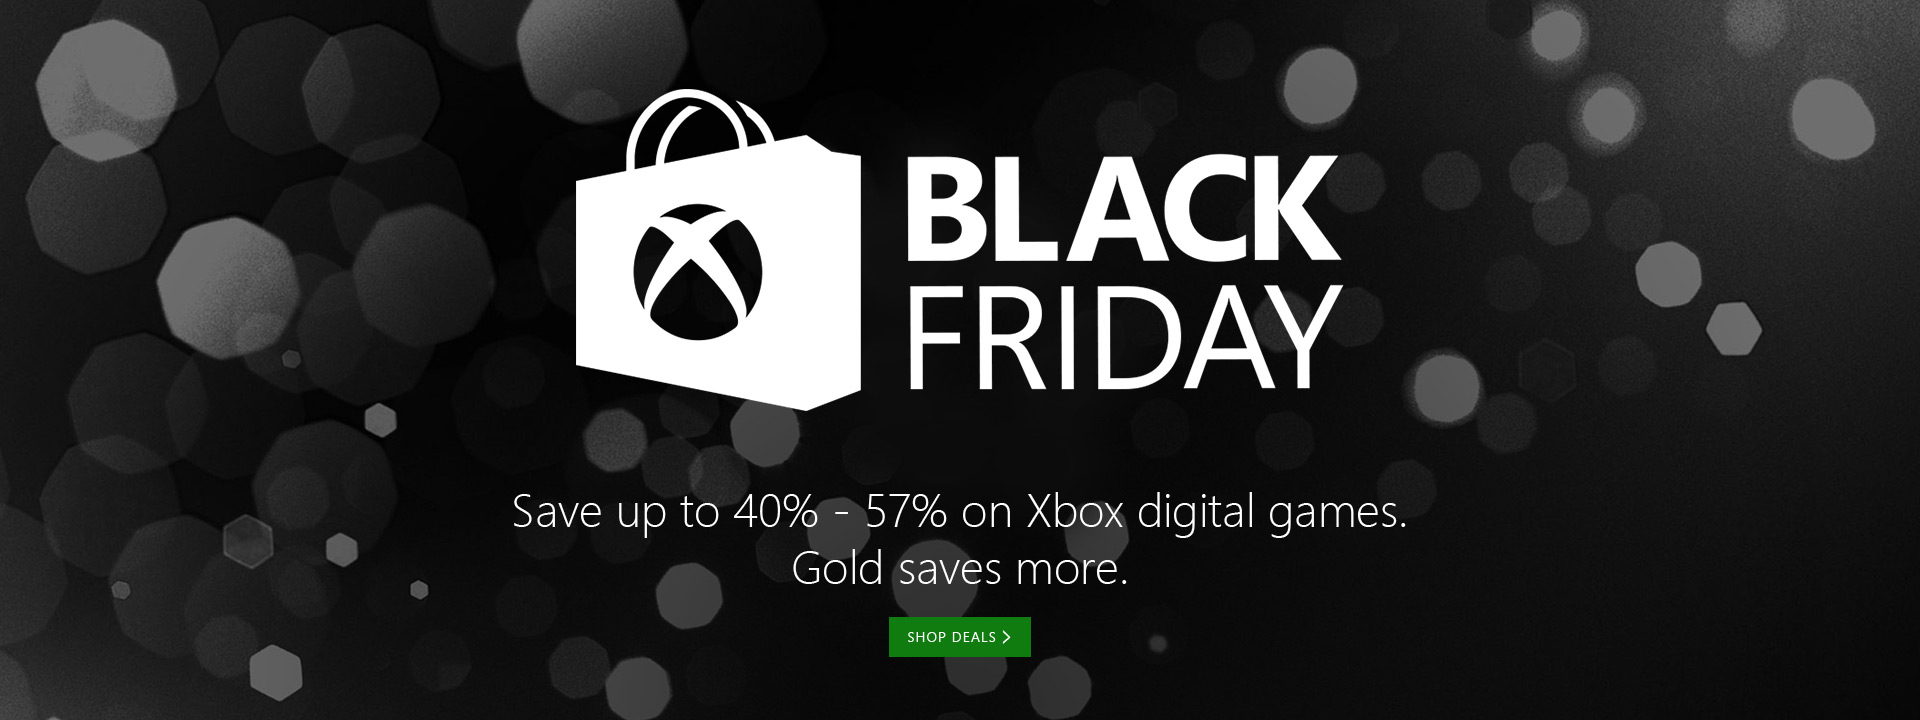 Xbox live deals of the week schedule